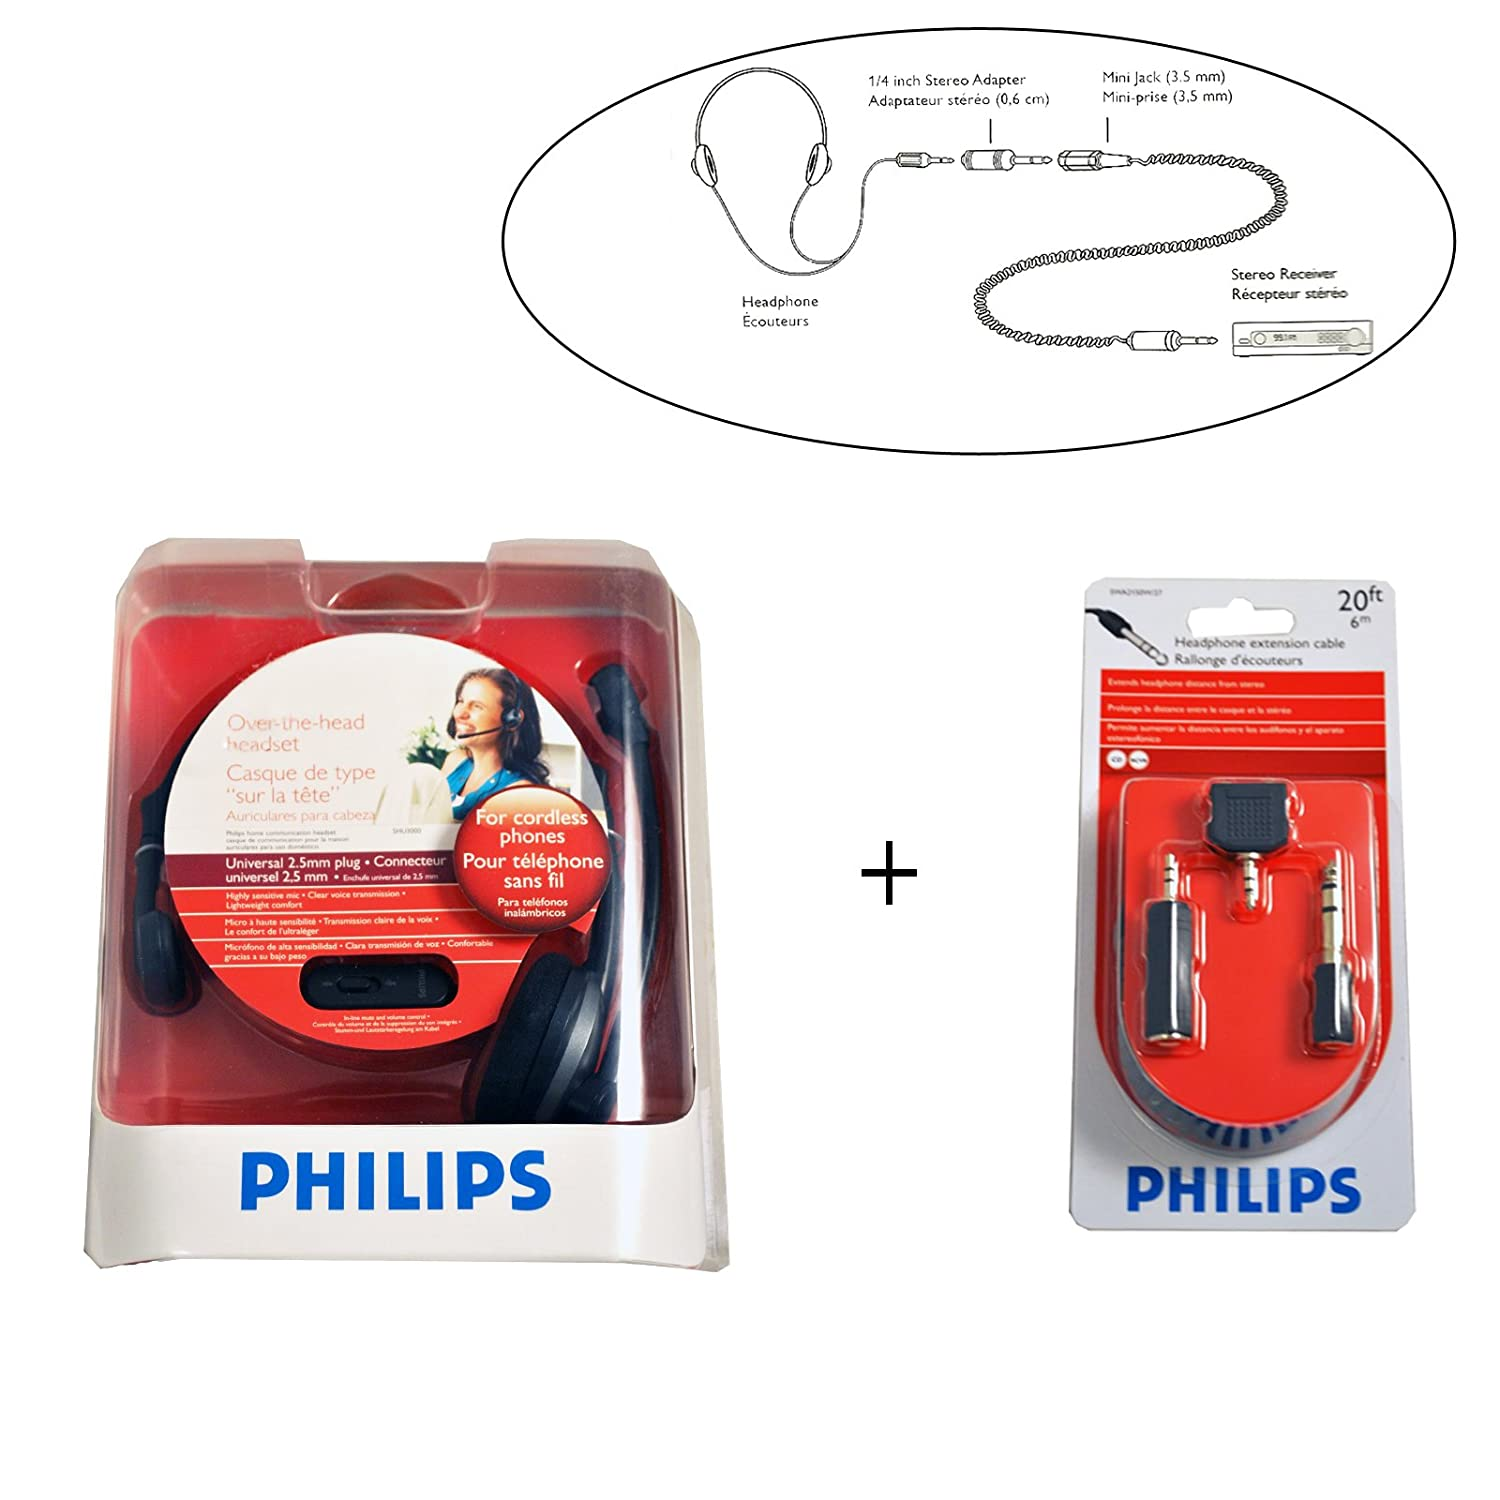 Amazon.com: Philips Headset & Headset Extension Cable Kit: Cell Phones & Accessories